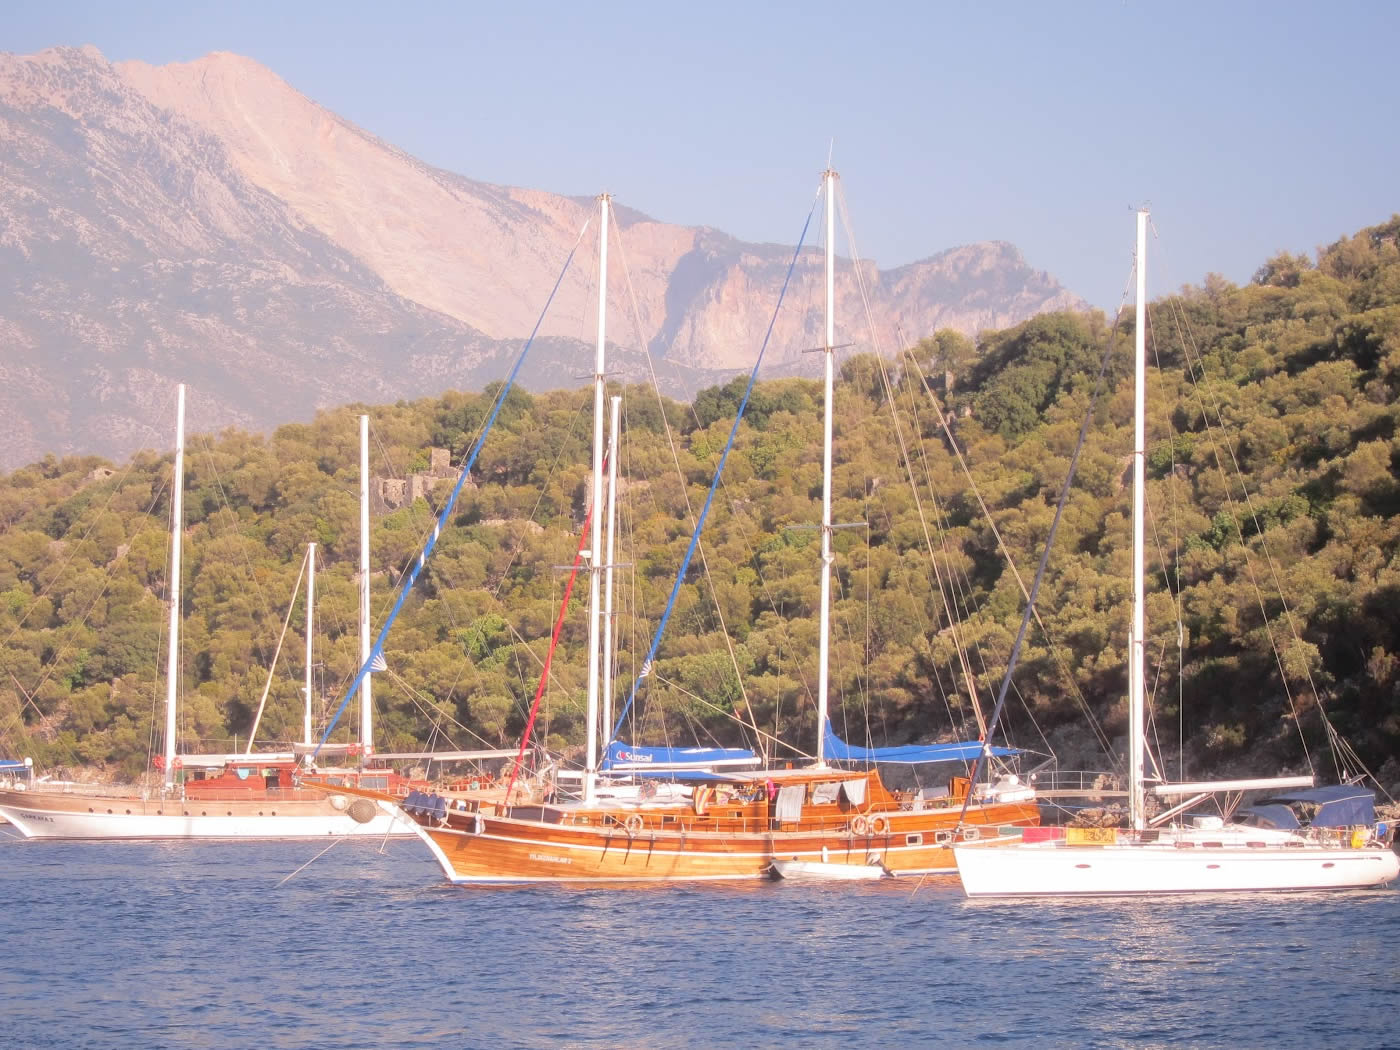 4 Day Fethiye To Marmaris Blue Cruise Cabin Charter 6